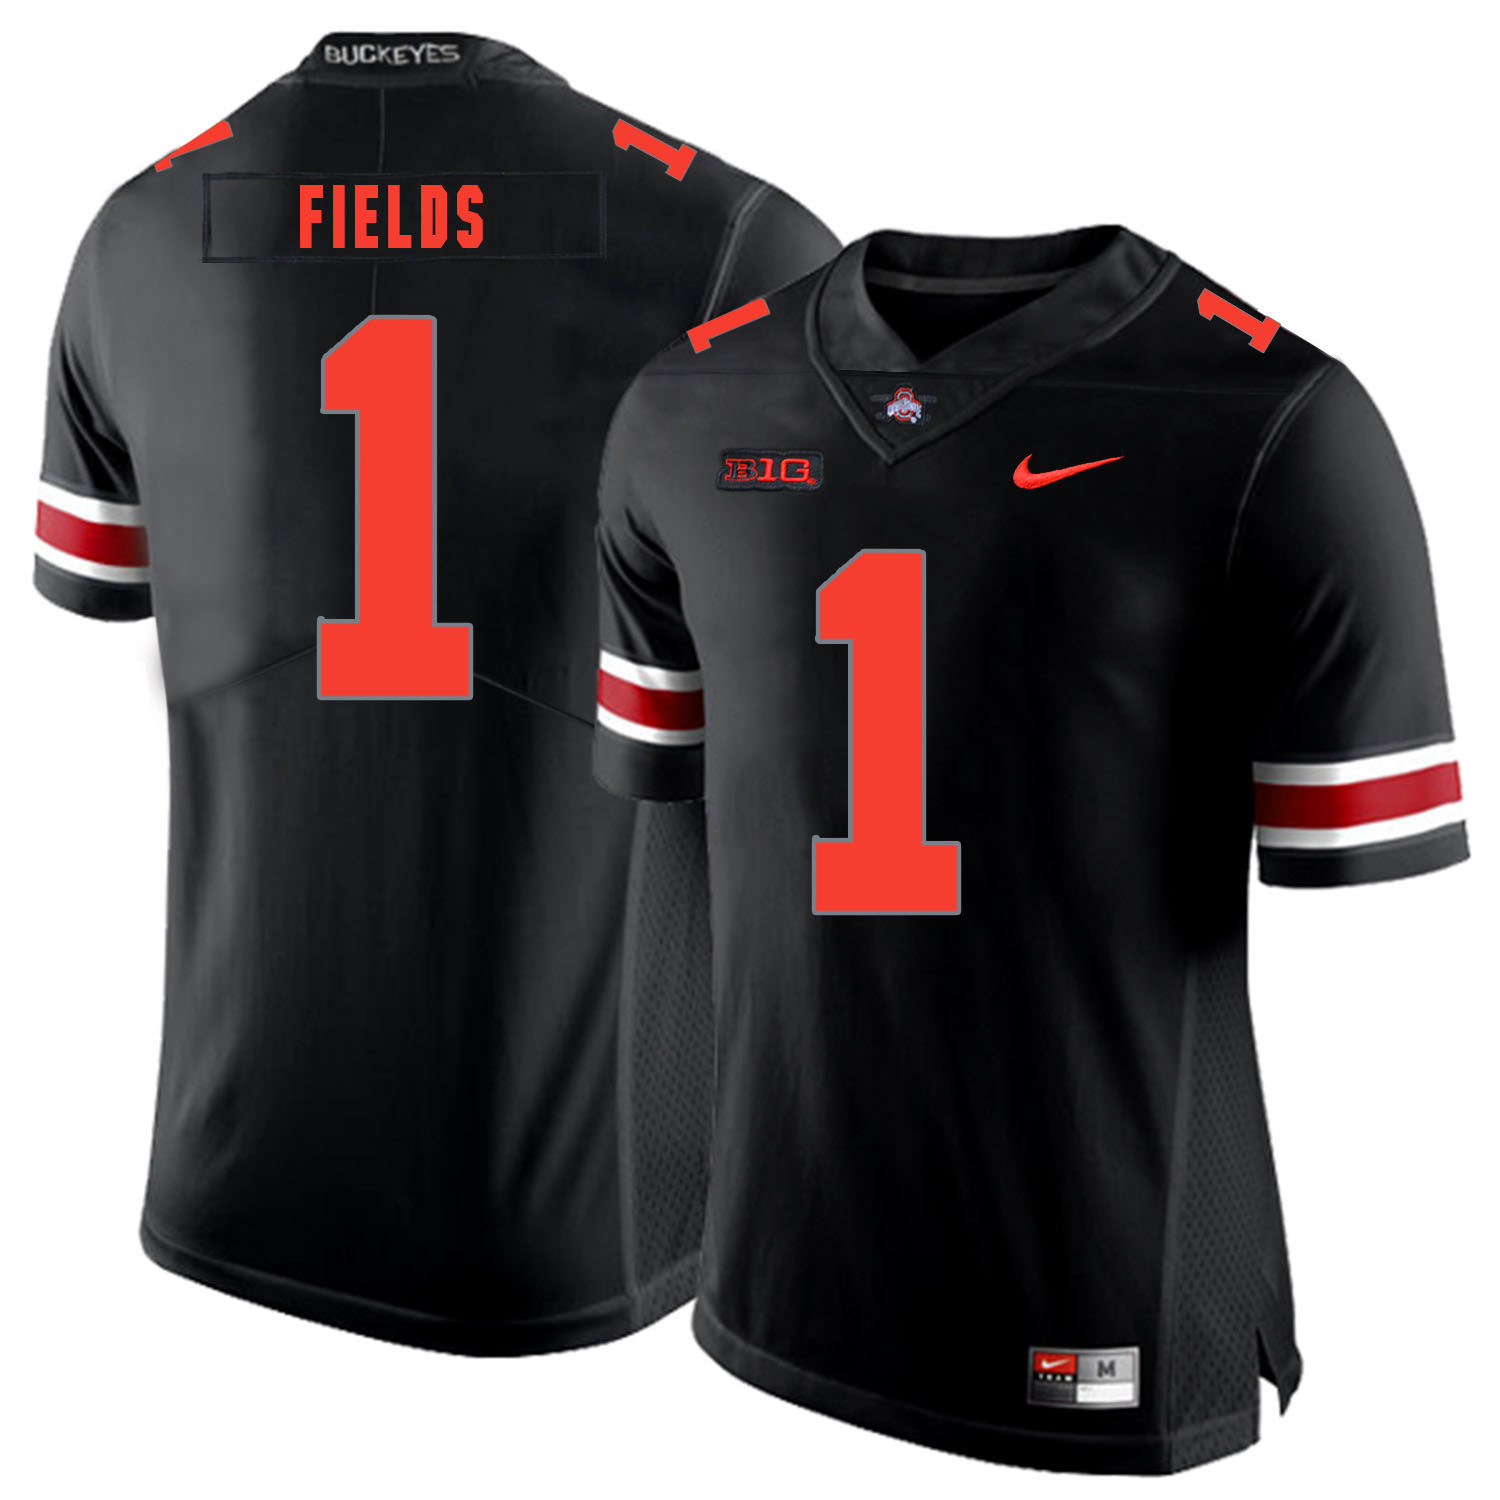 Ohio State Buckeyes 1 Justin Fields Black Shadow Legend Limited Nike College Football Jersey